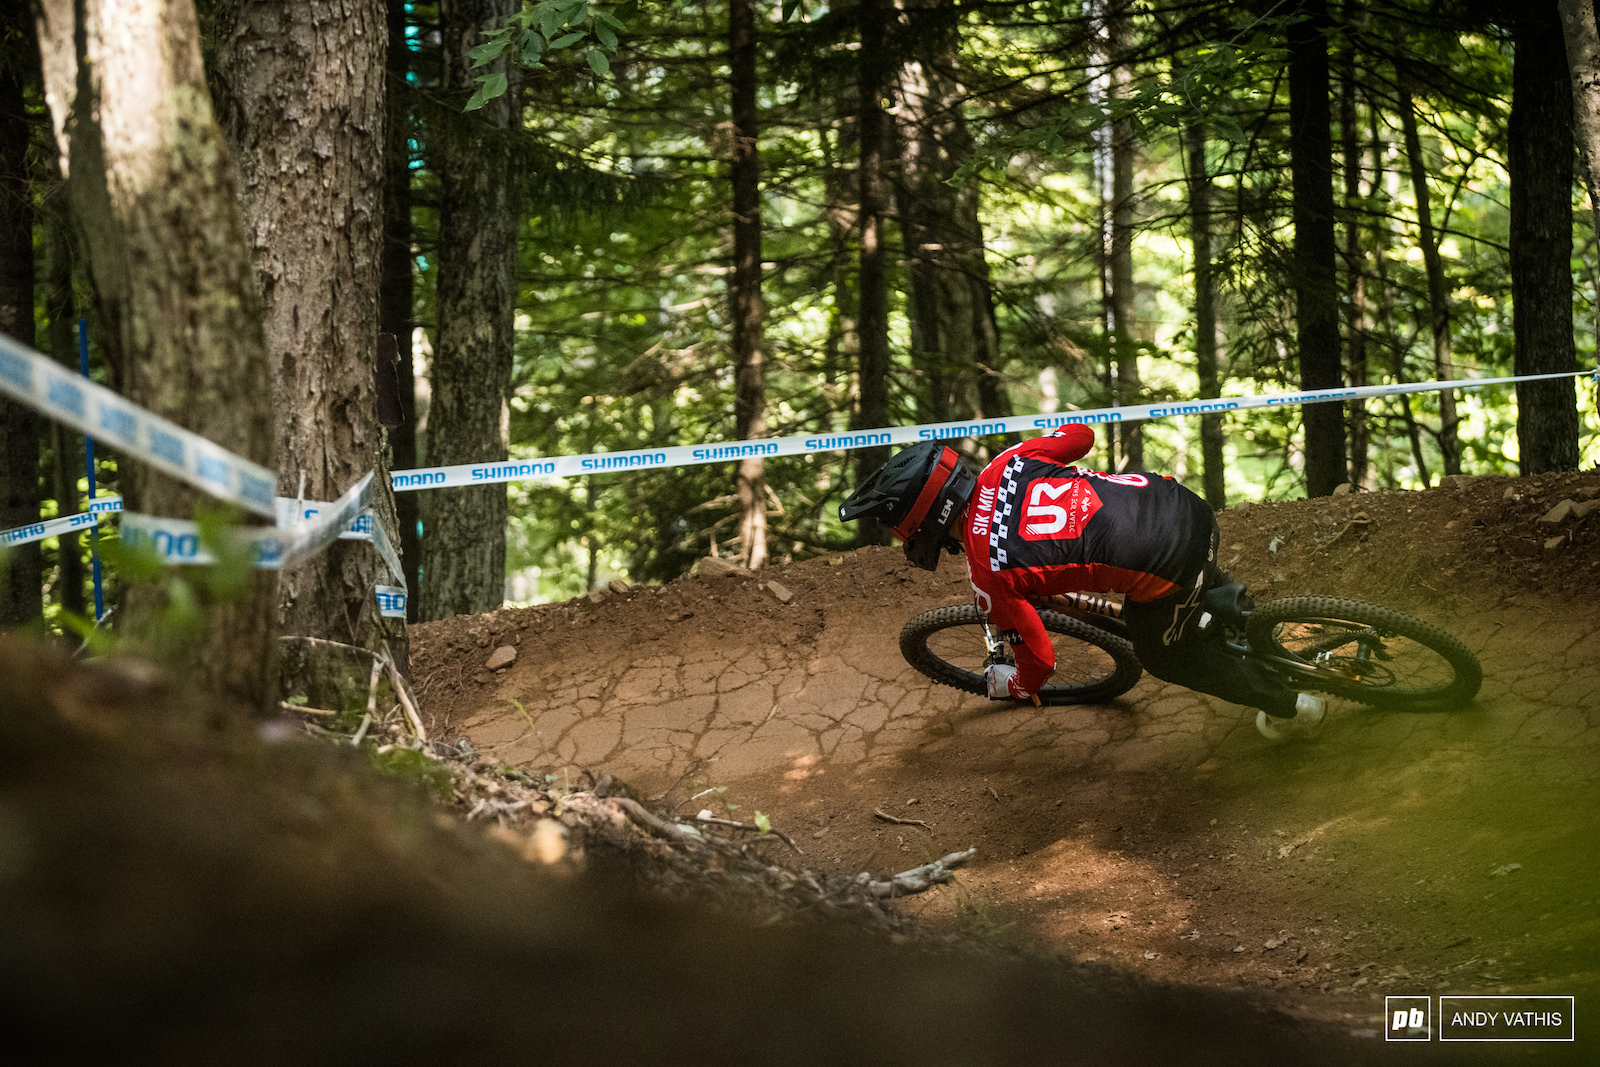 Mick Hannah around the high speed berms. 16th for him today.